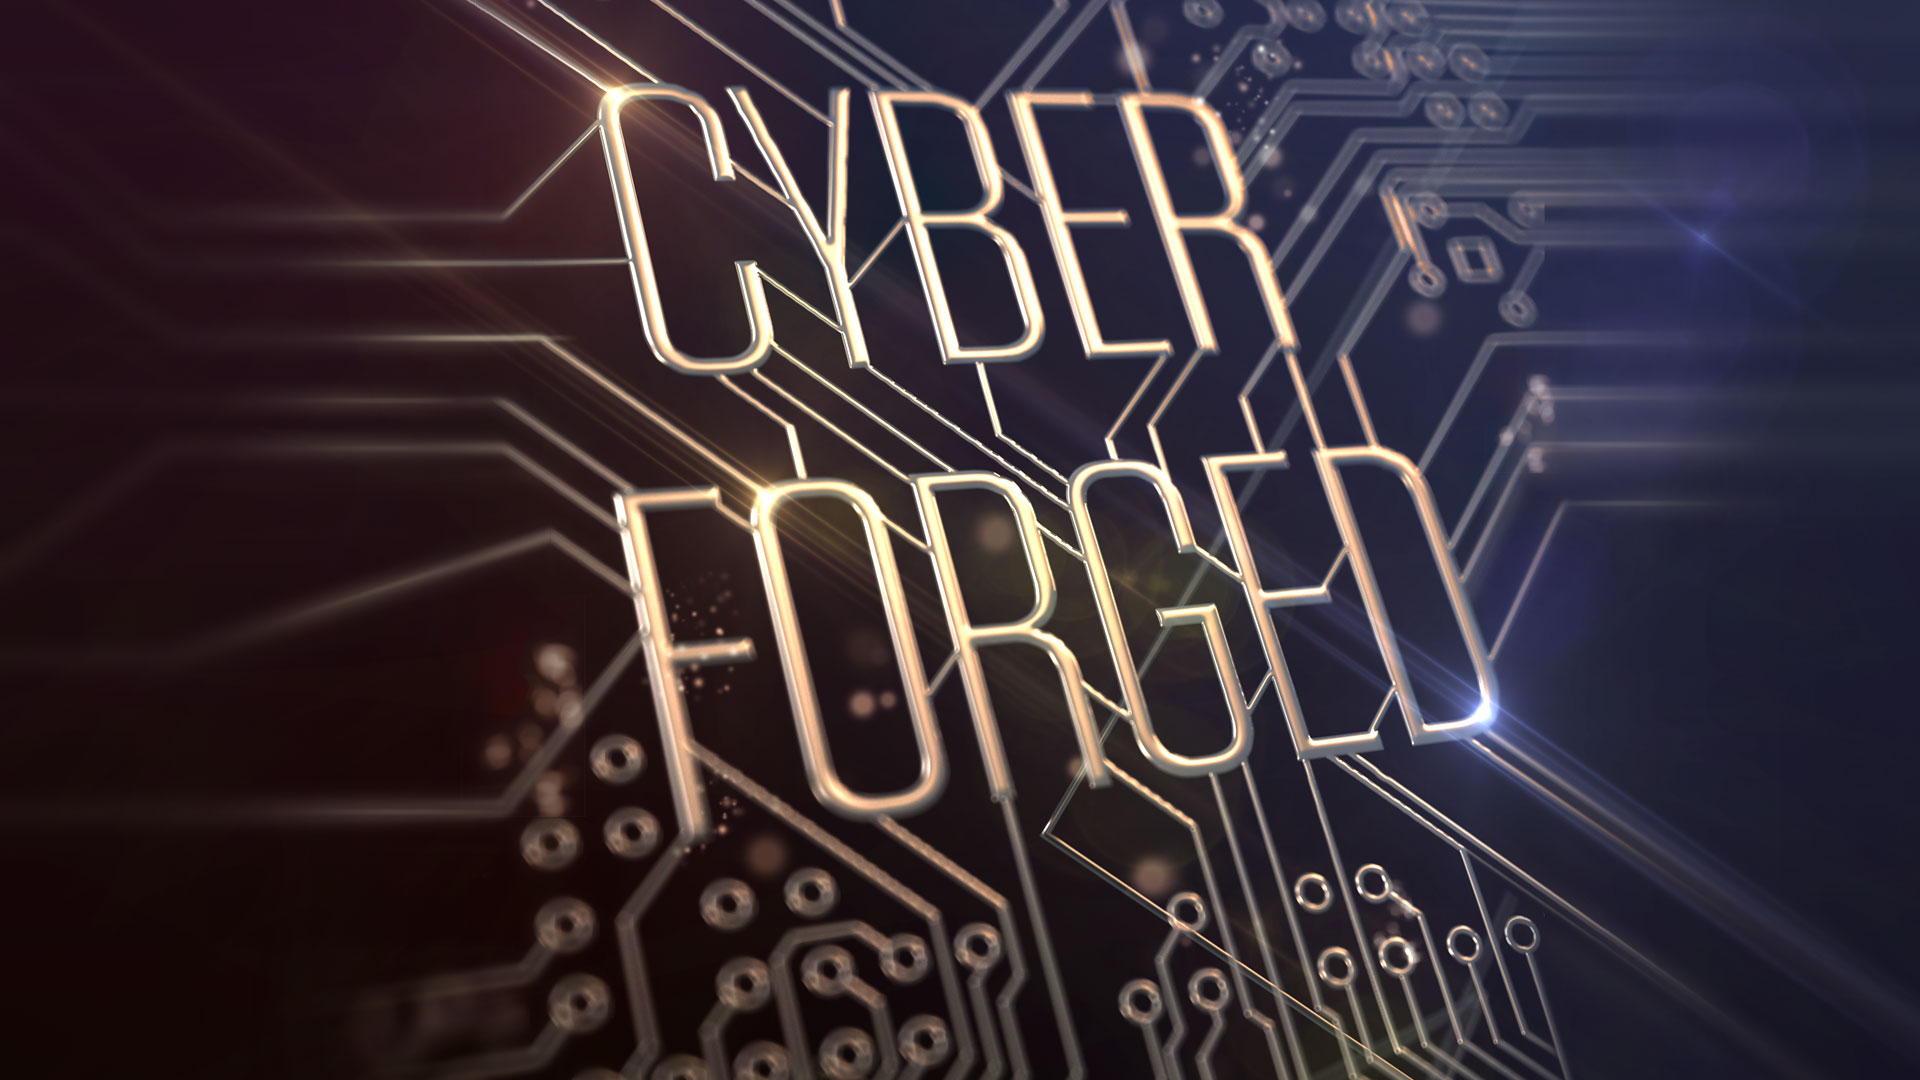 Cyber Forged